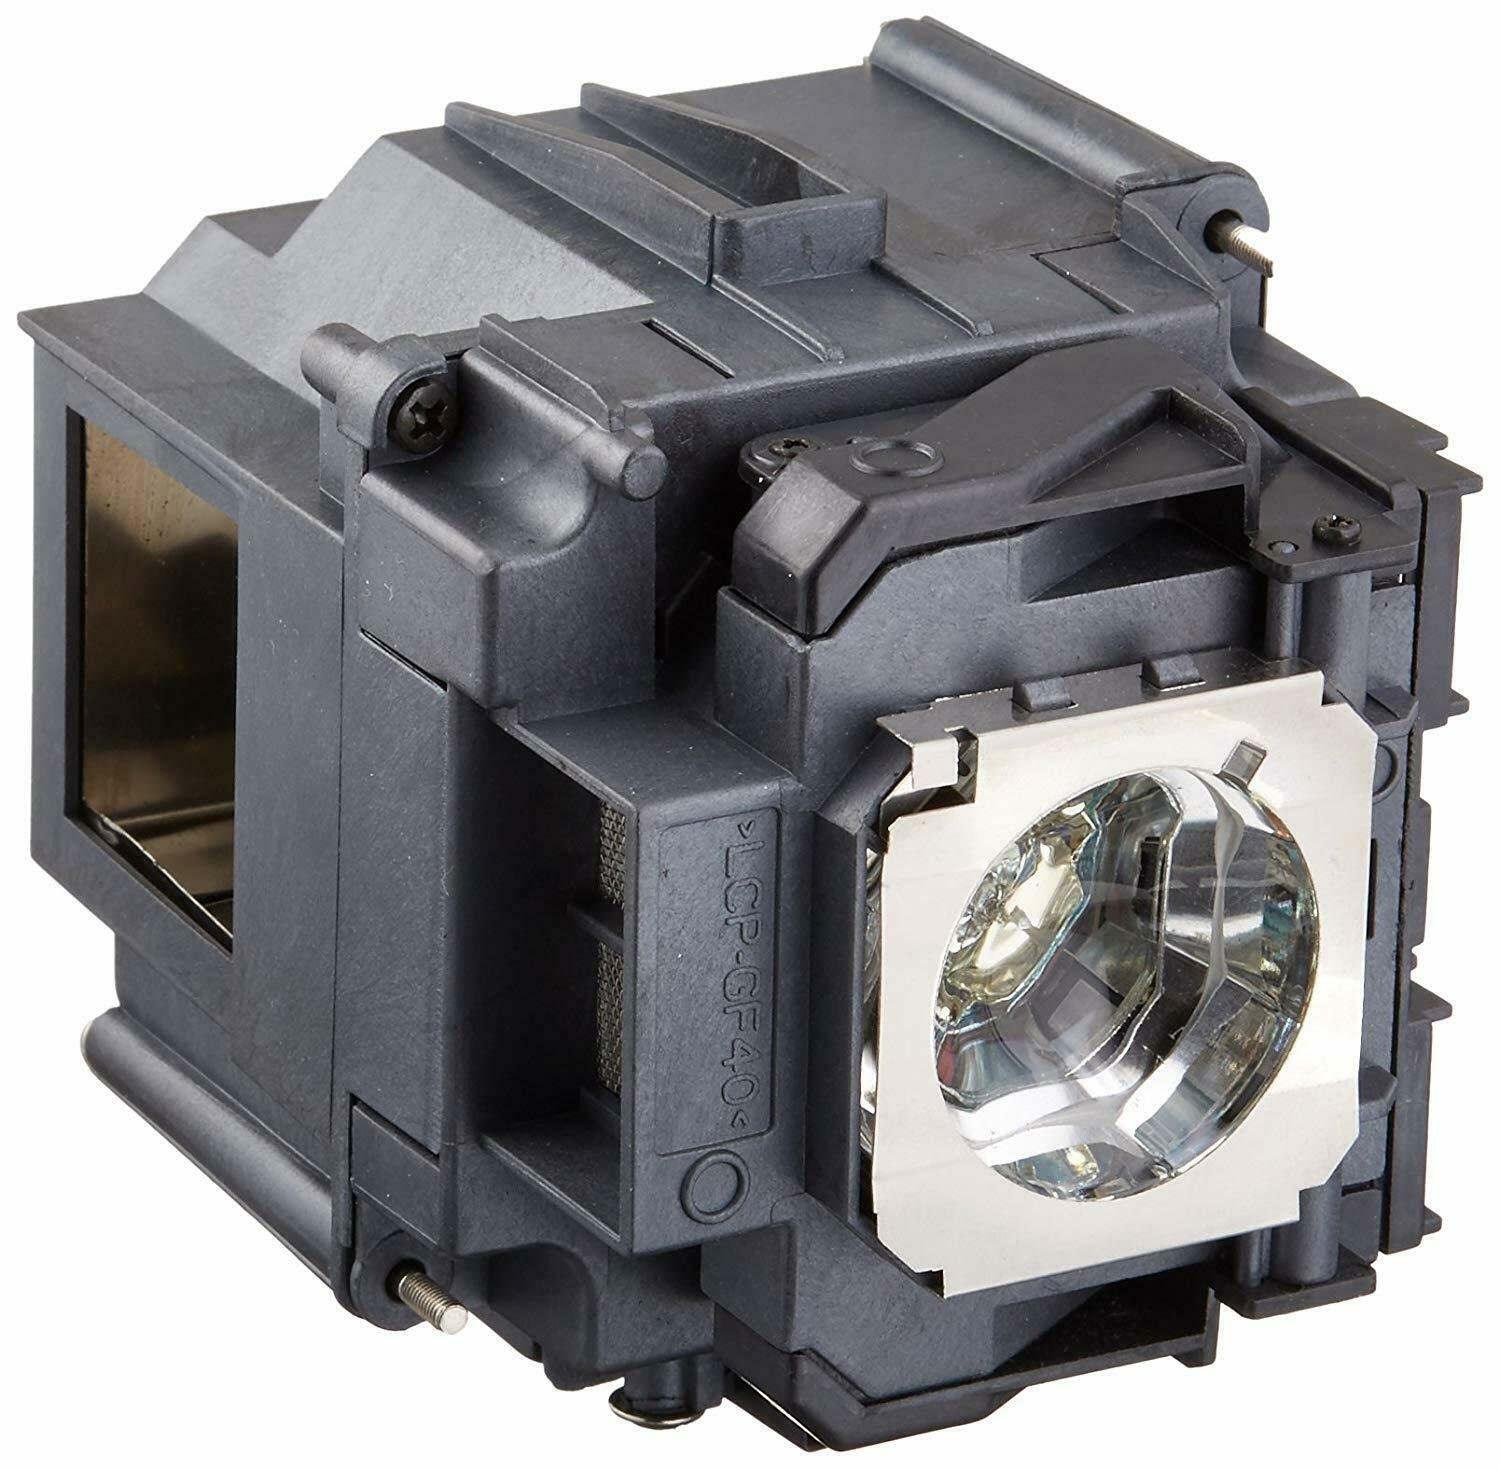 For EPSON PowerLite Pro G6870 Projector Lamp with OEM Osram PVIP bulb inside